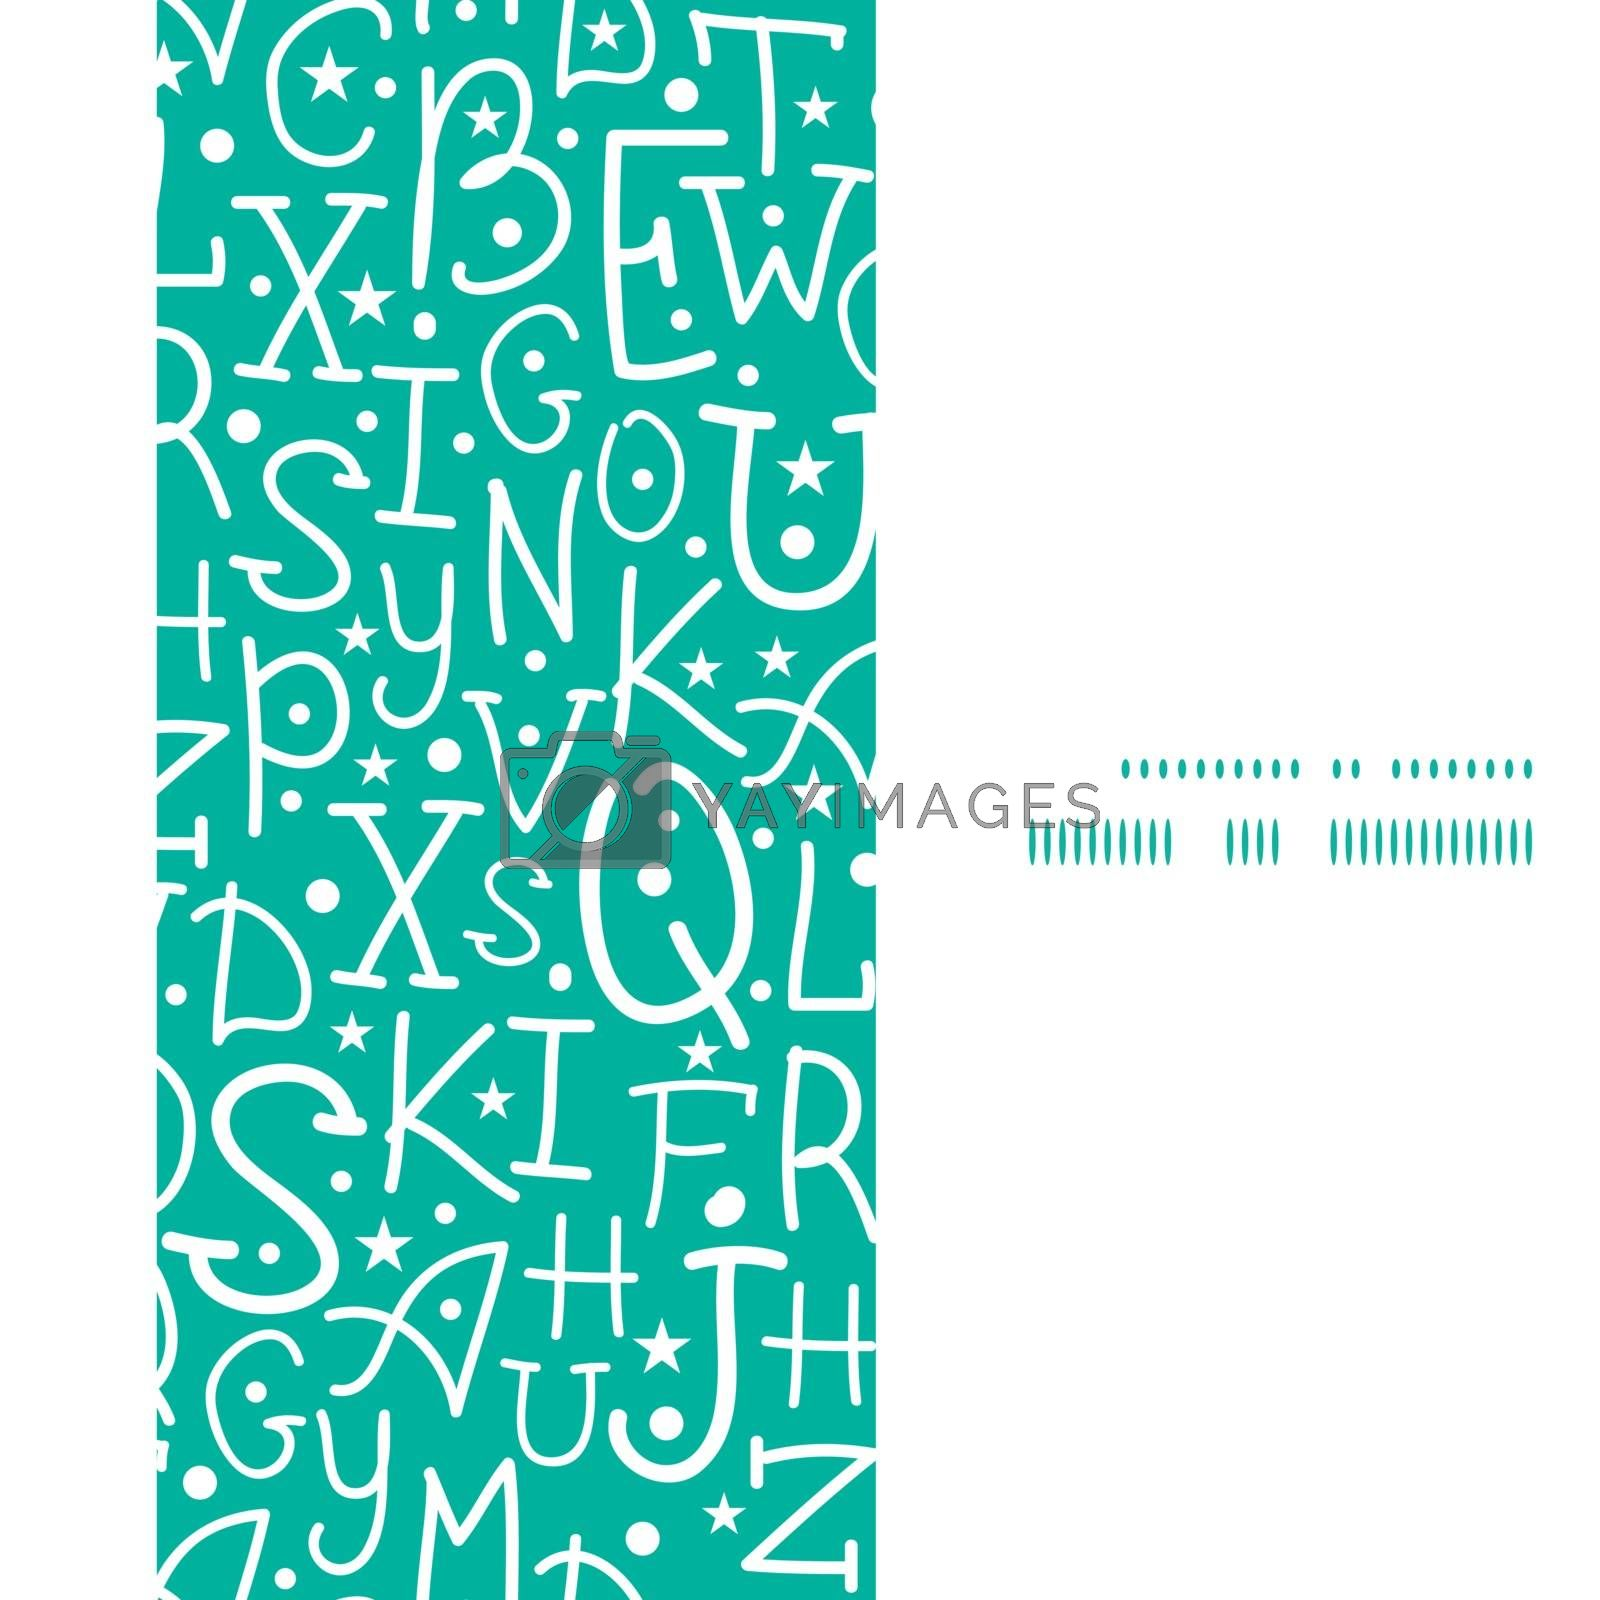 Vector white on green alphabet letters vertical frame seamless pattern background graphic design